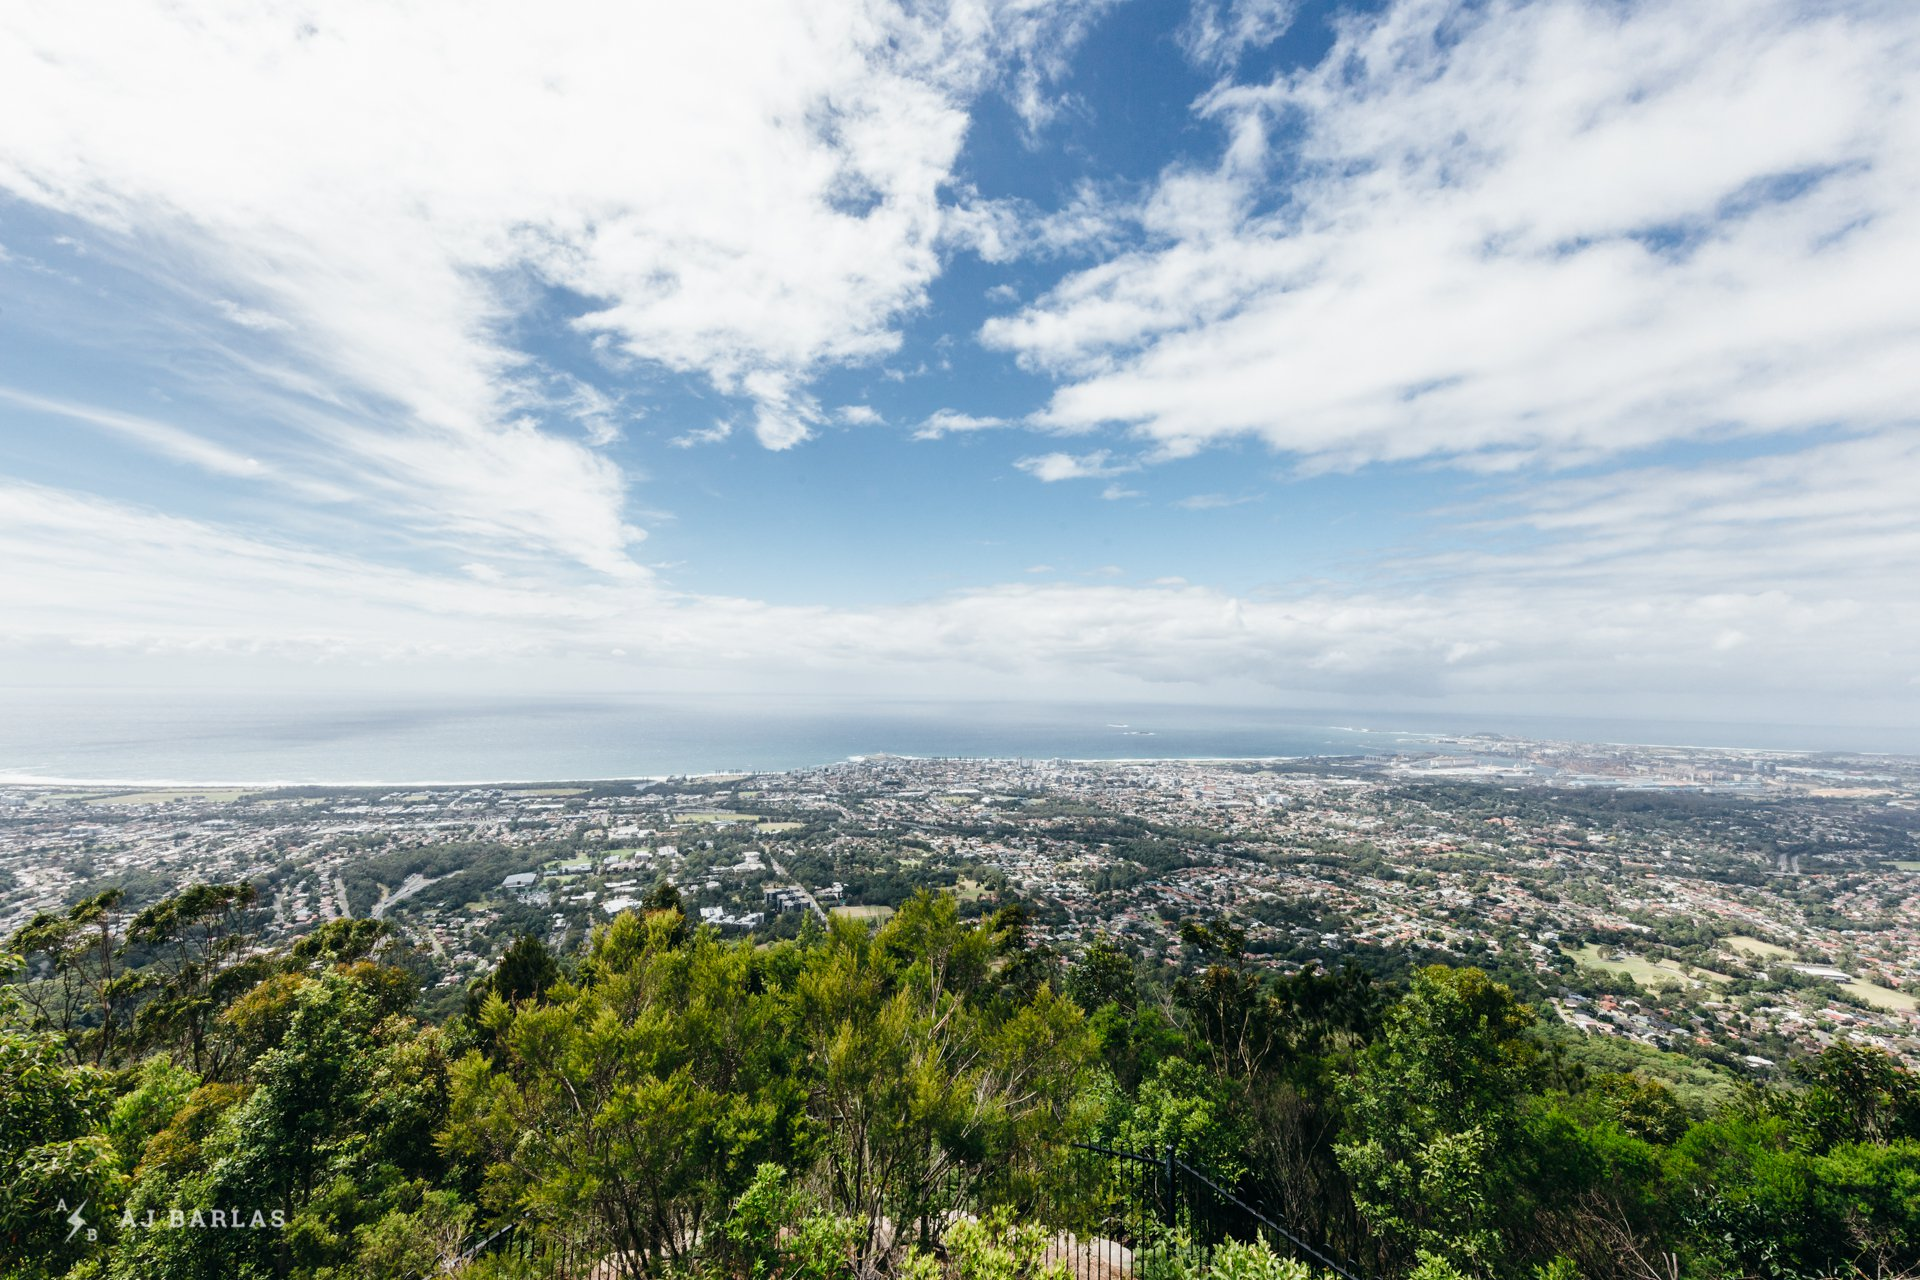 Wollongong from the top of Mount Kiera